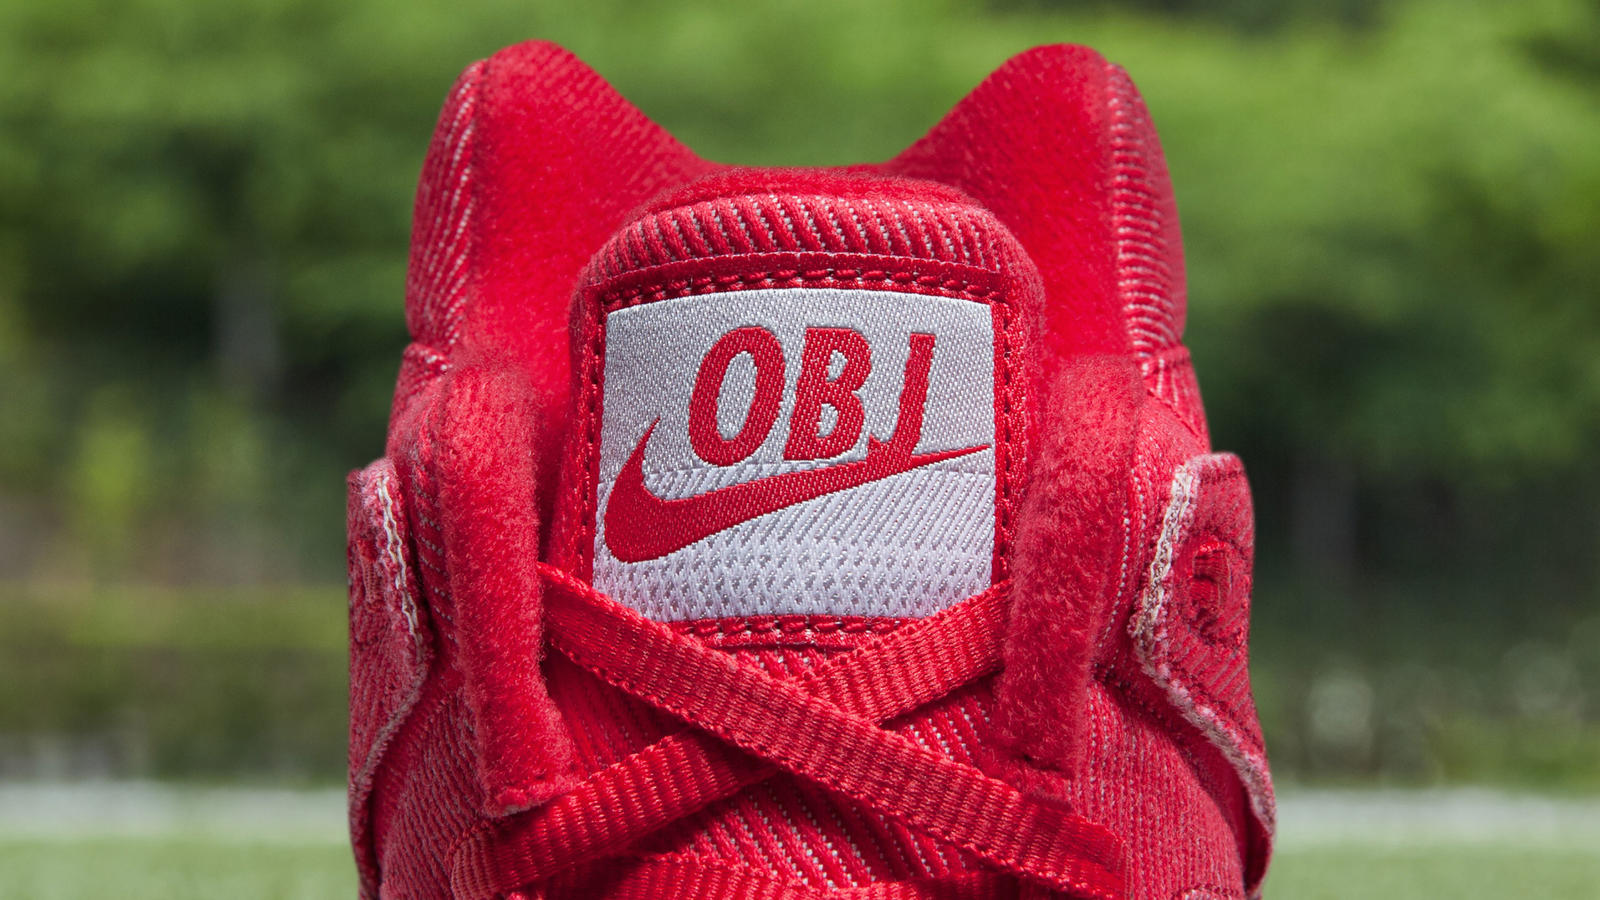 FeaturedFootwear_OBJ_PreGame_2018-181_re_hd_1600.jpg